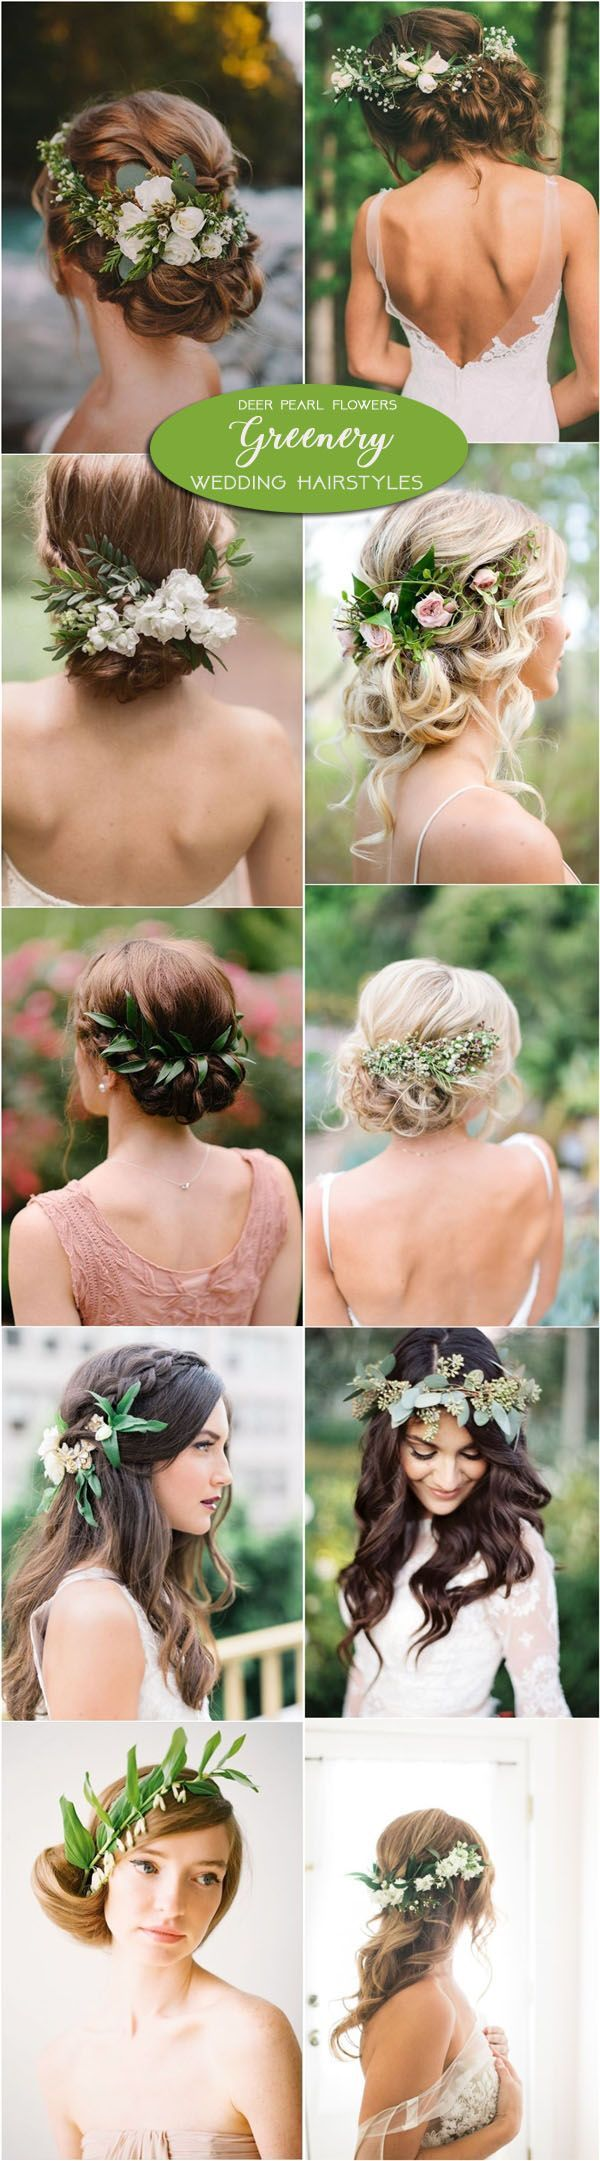 Greenery wedding hairstyles and wedding updos with green flowers / www.deerpearlflow...